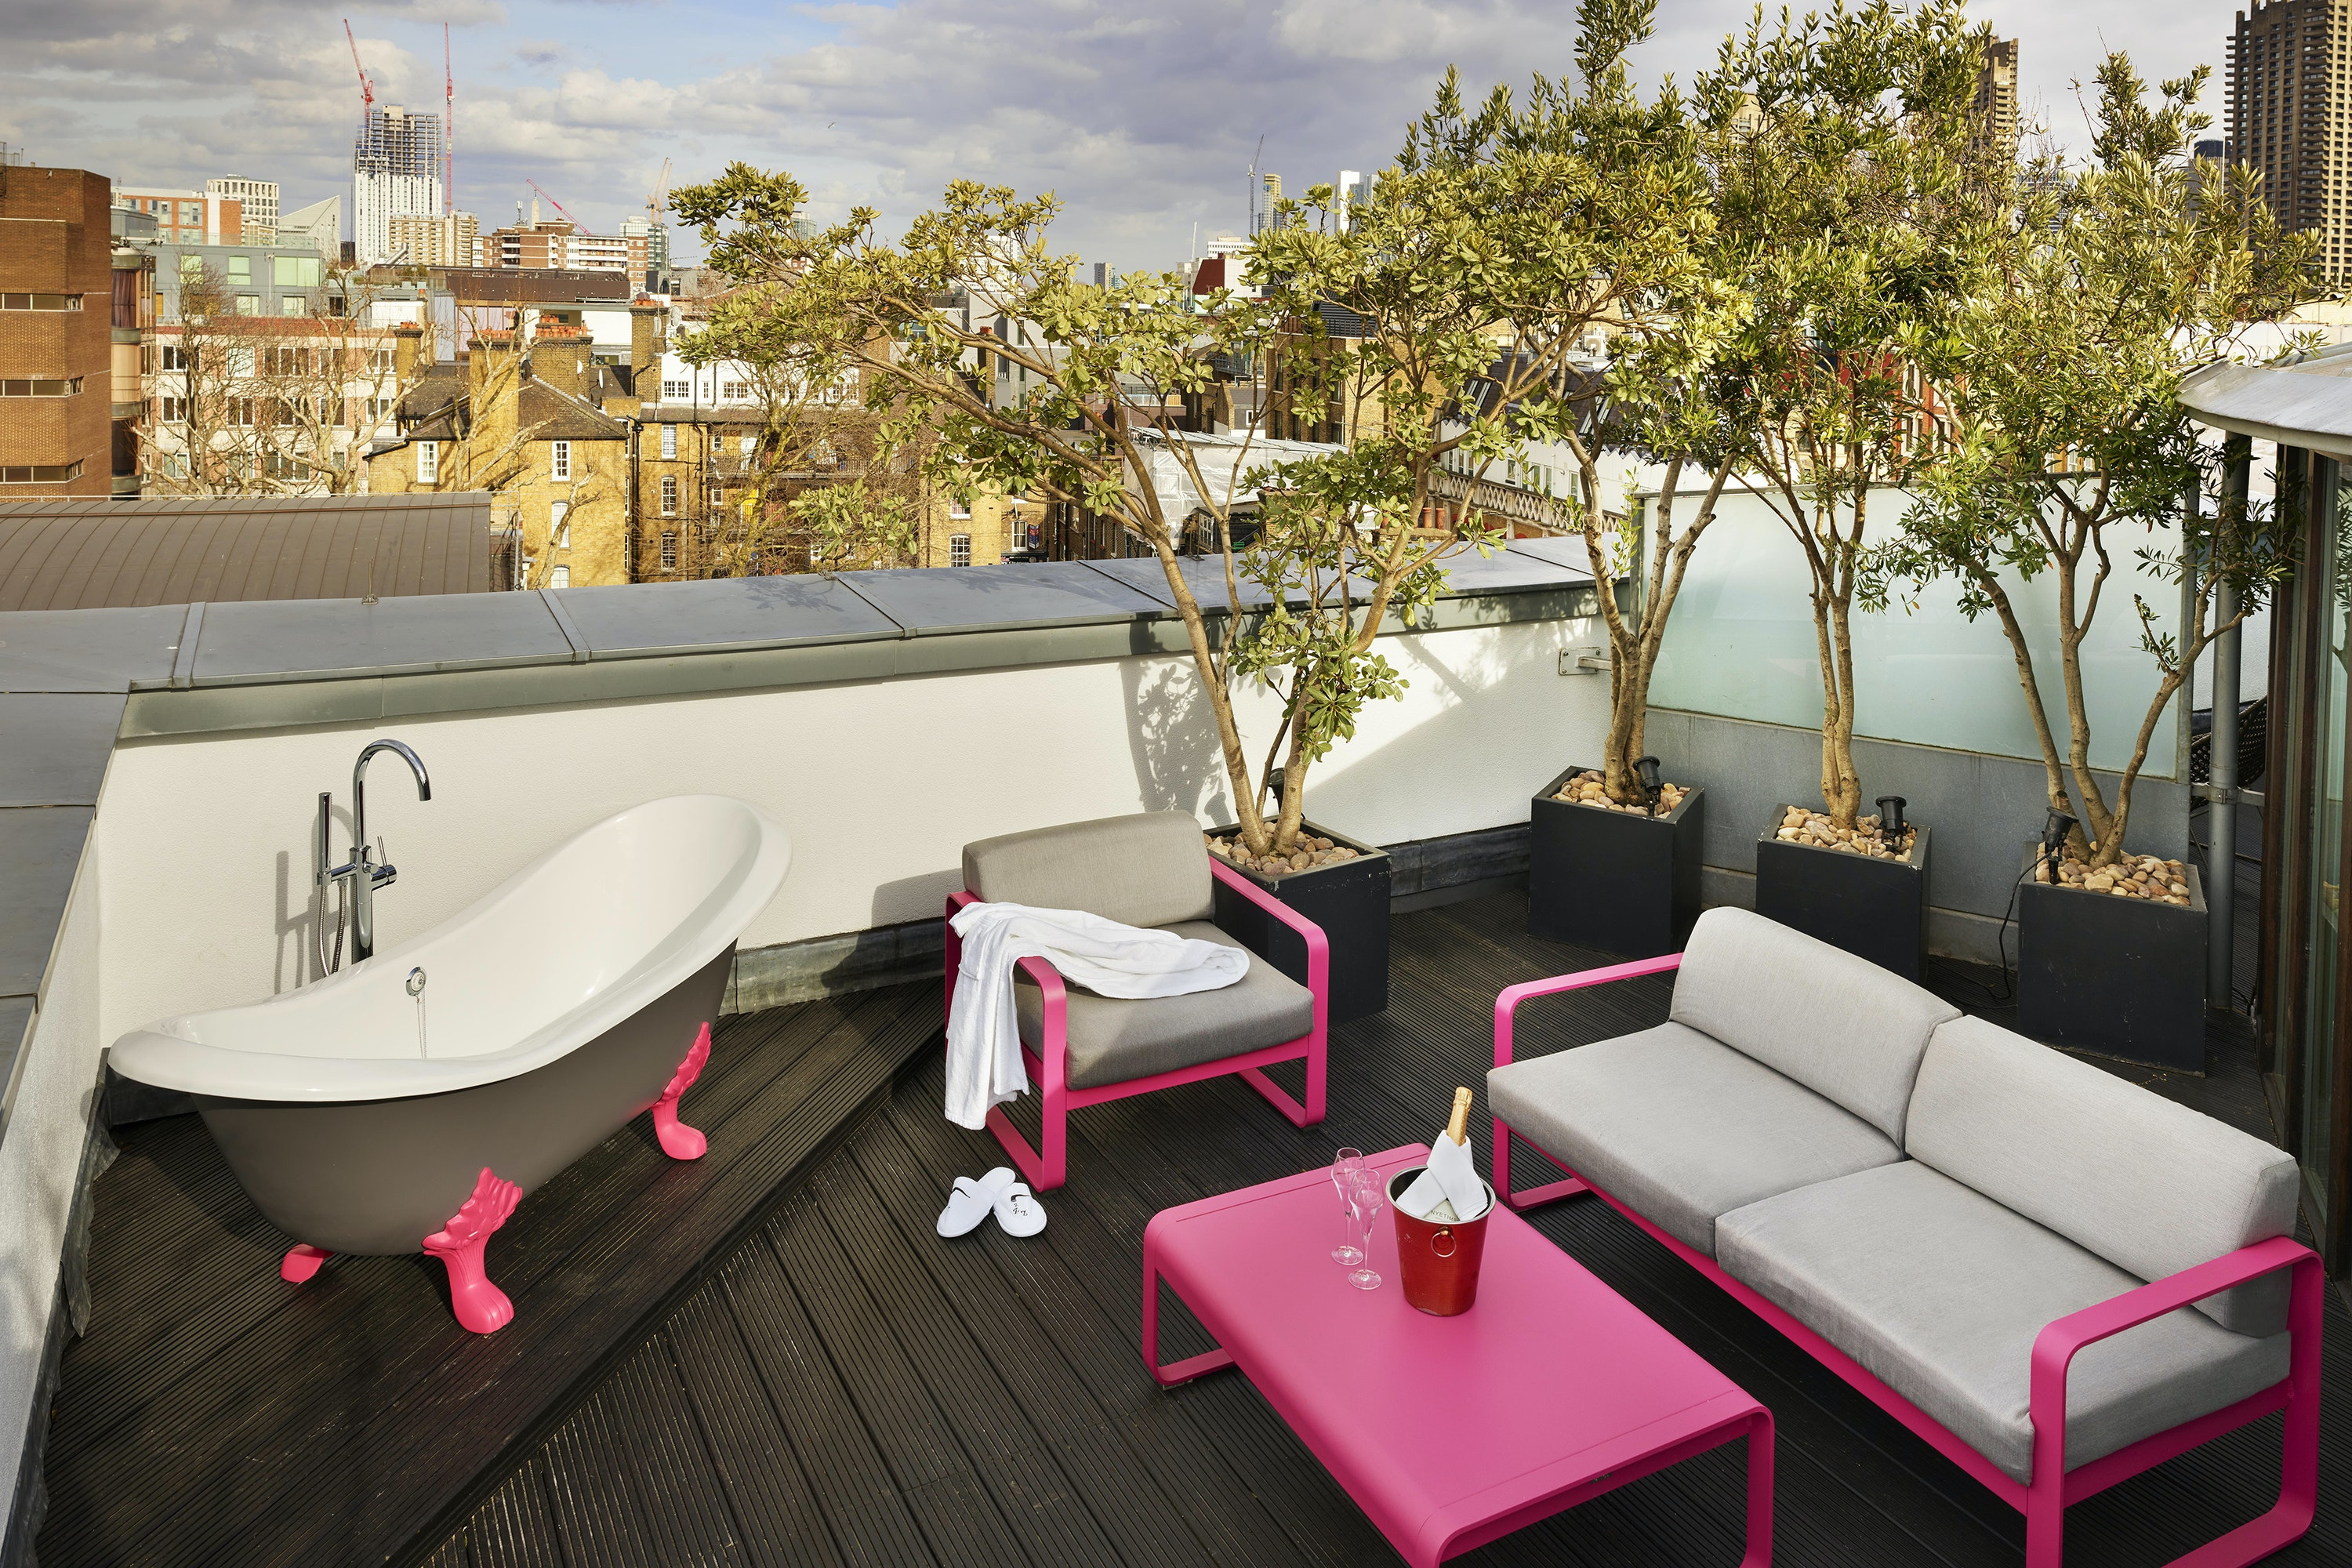 Enjoy a different perspective on London from The Zetter Hotel's rooftop bathtub.